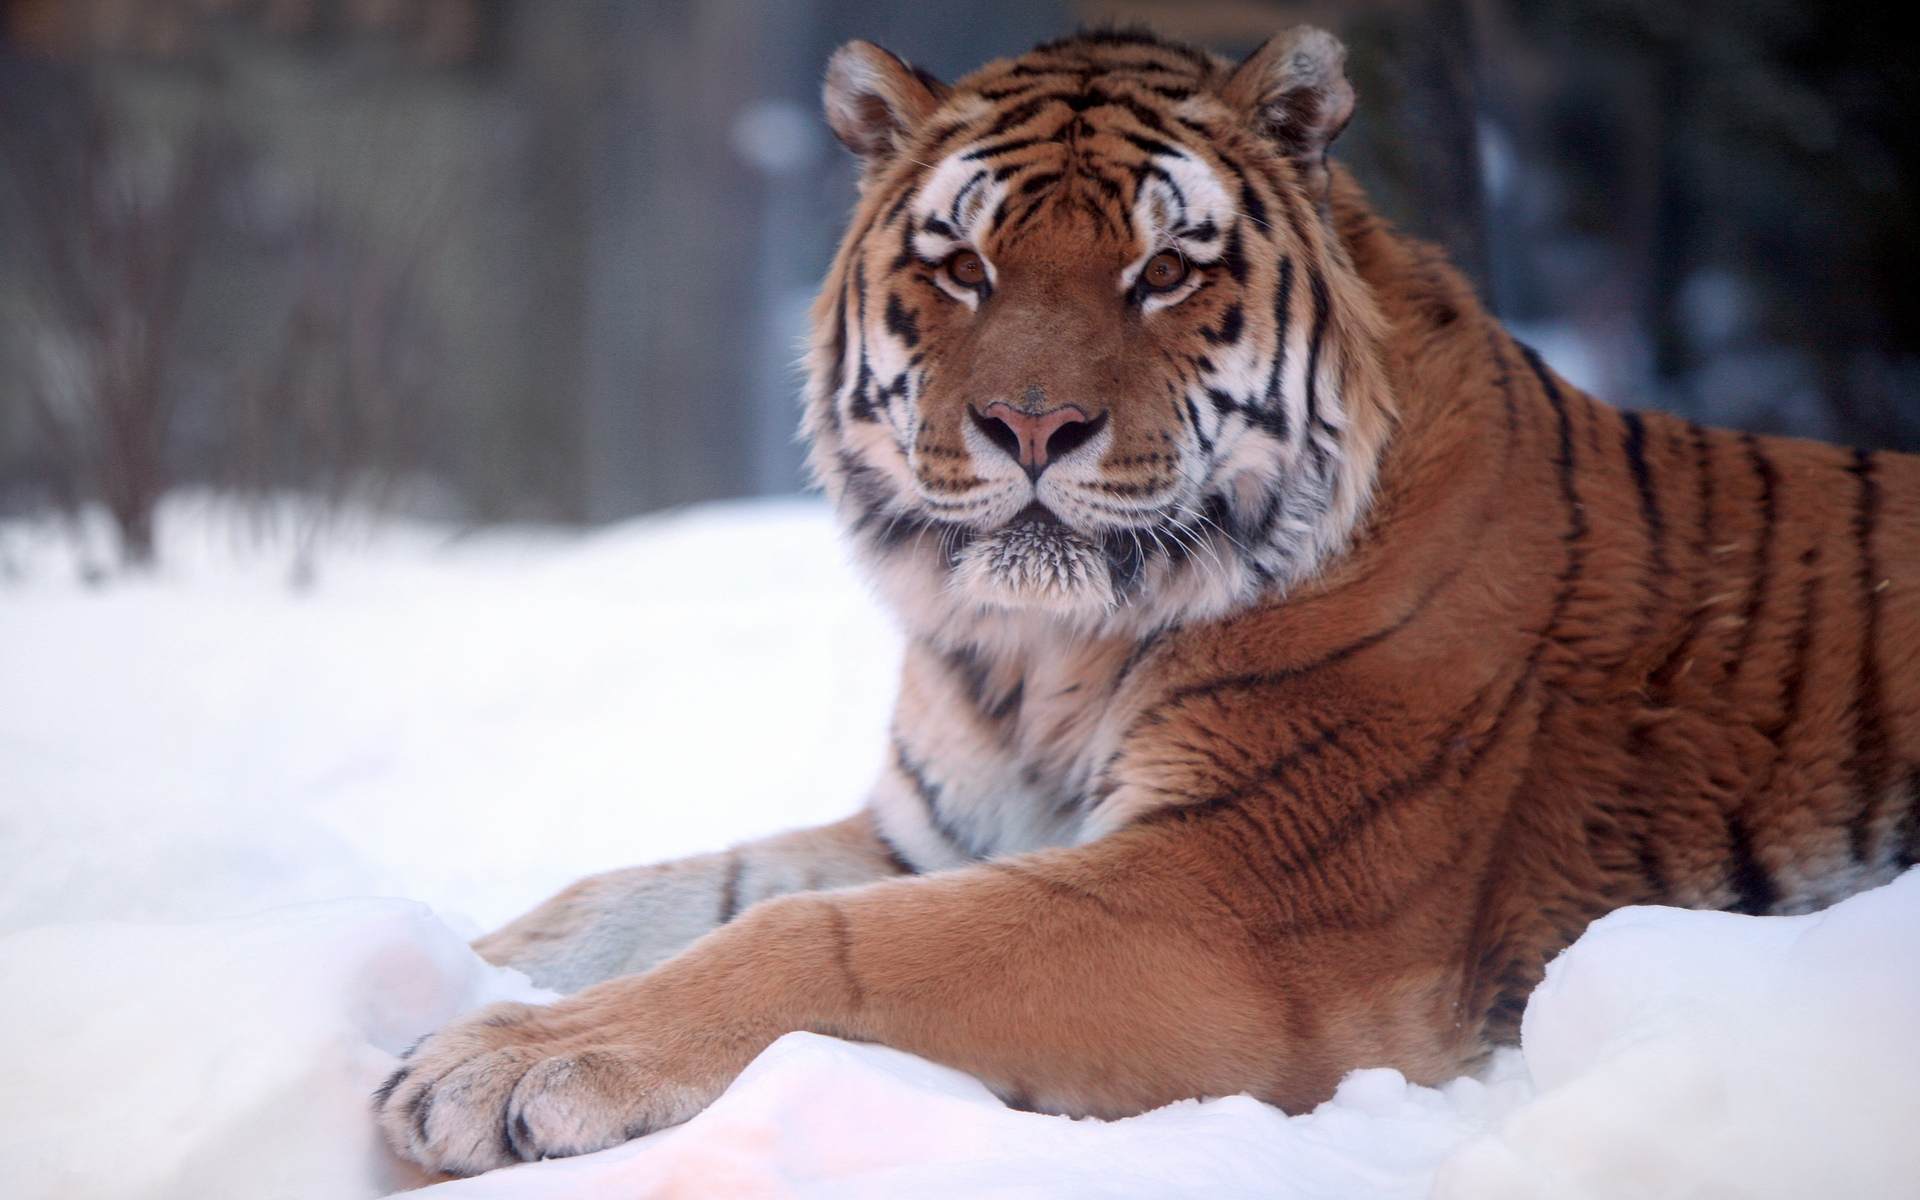 Tiger Snow Wide 275.36 Kb